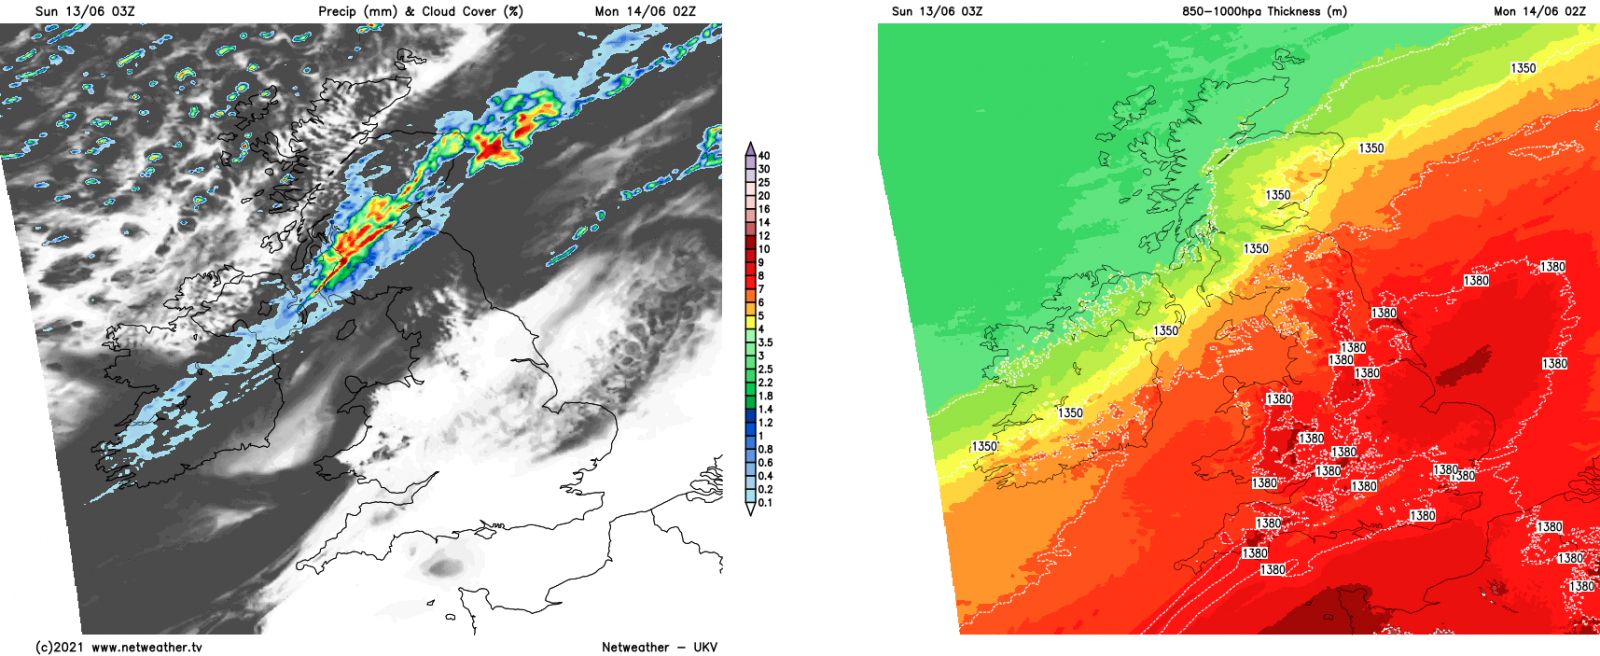 A weather front moving south overnight introducing cooler, fresher air behind it